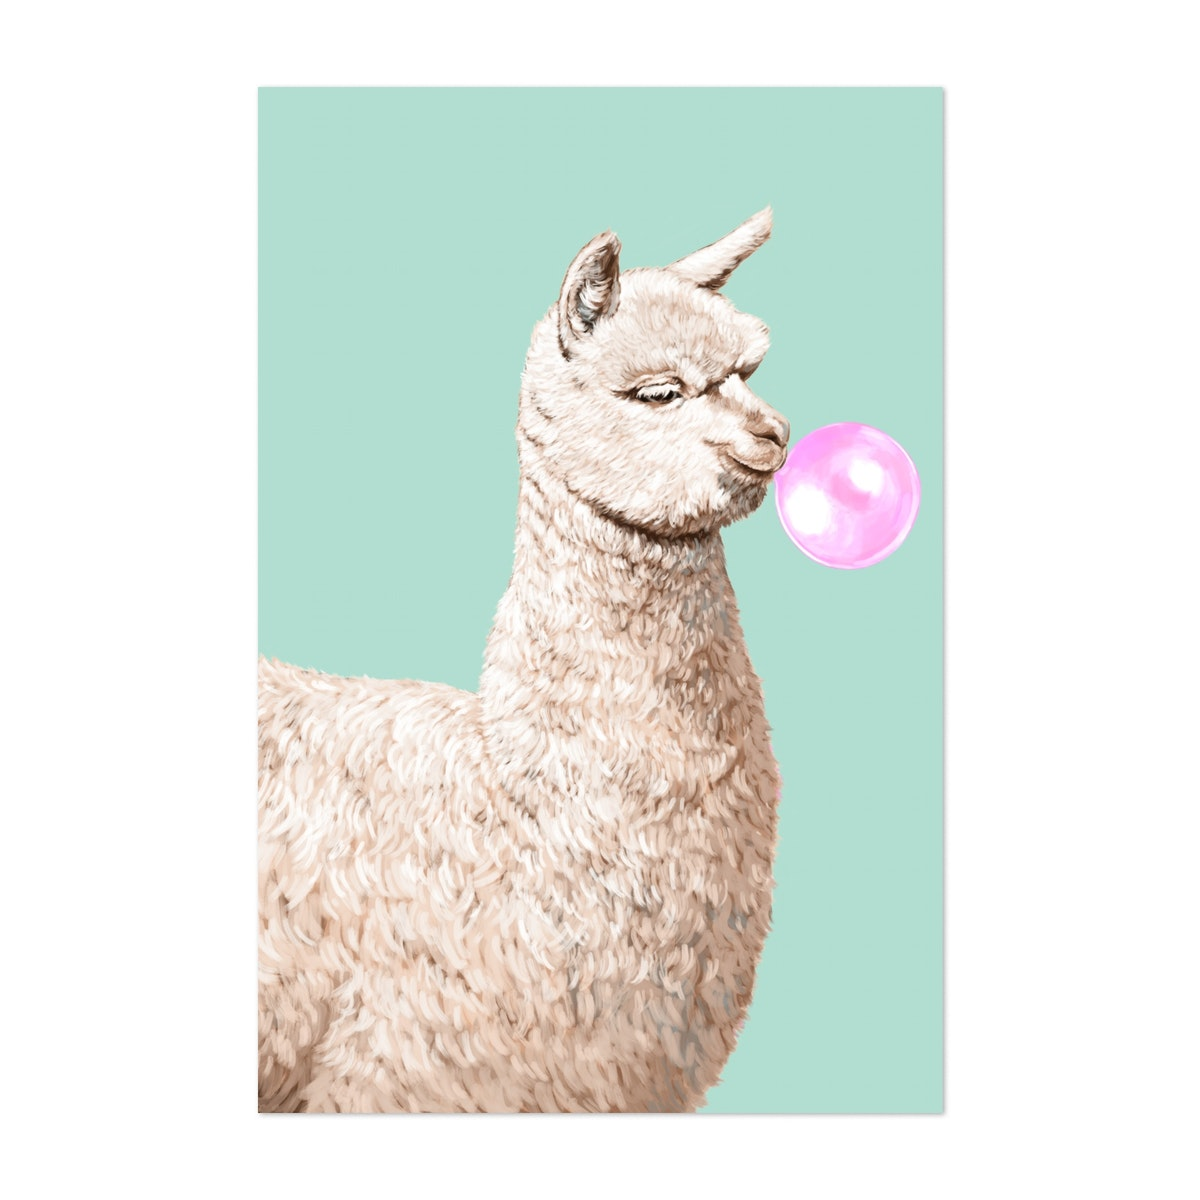 Playful Alpaca Chewing Bubble Gum In Green